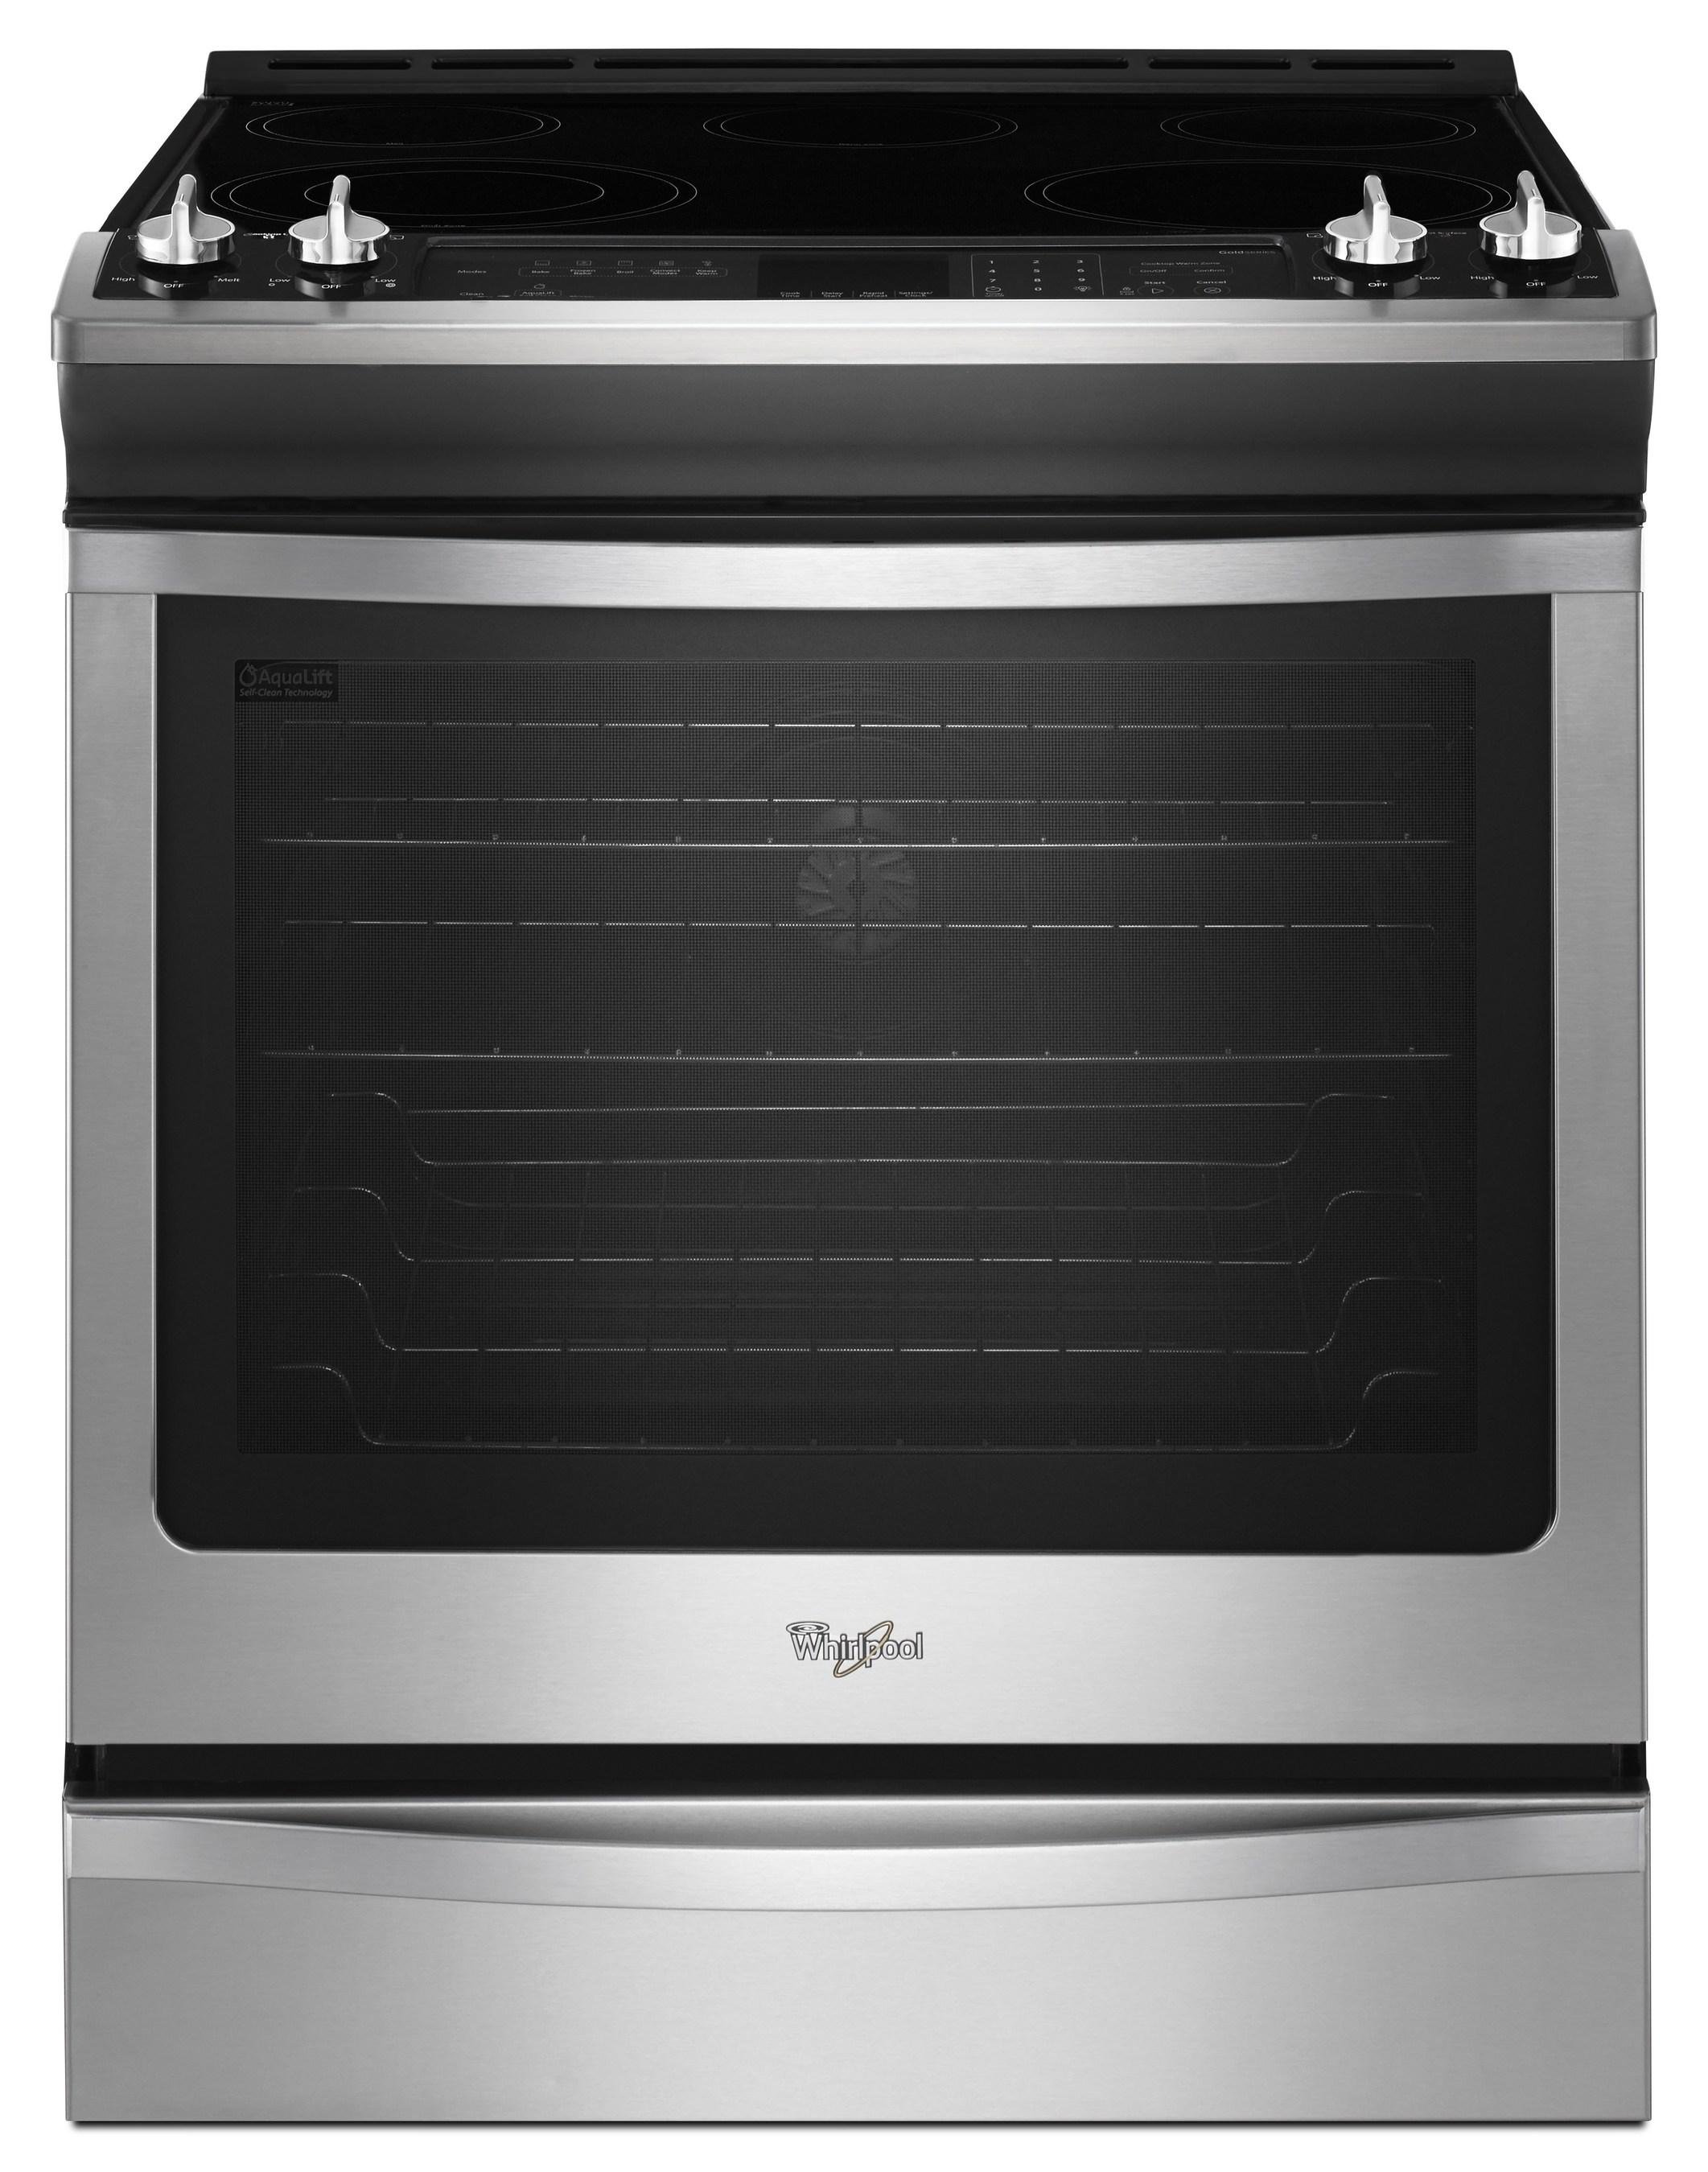 The Whirlpool(R) 5.8 Cu. Ft. Slide In Gas Stove With